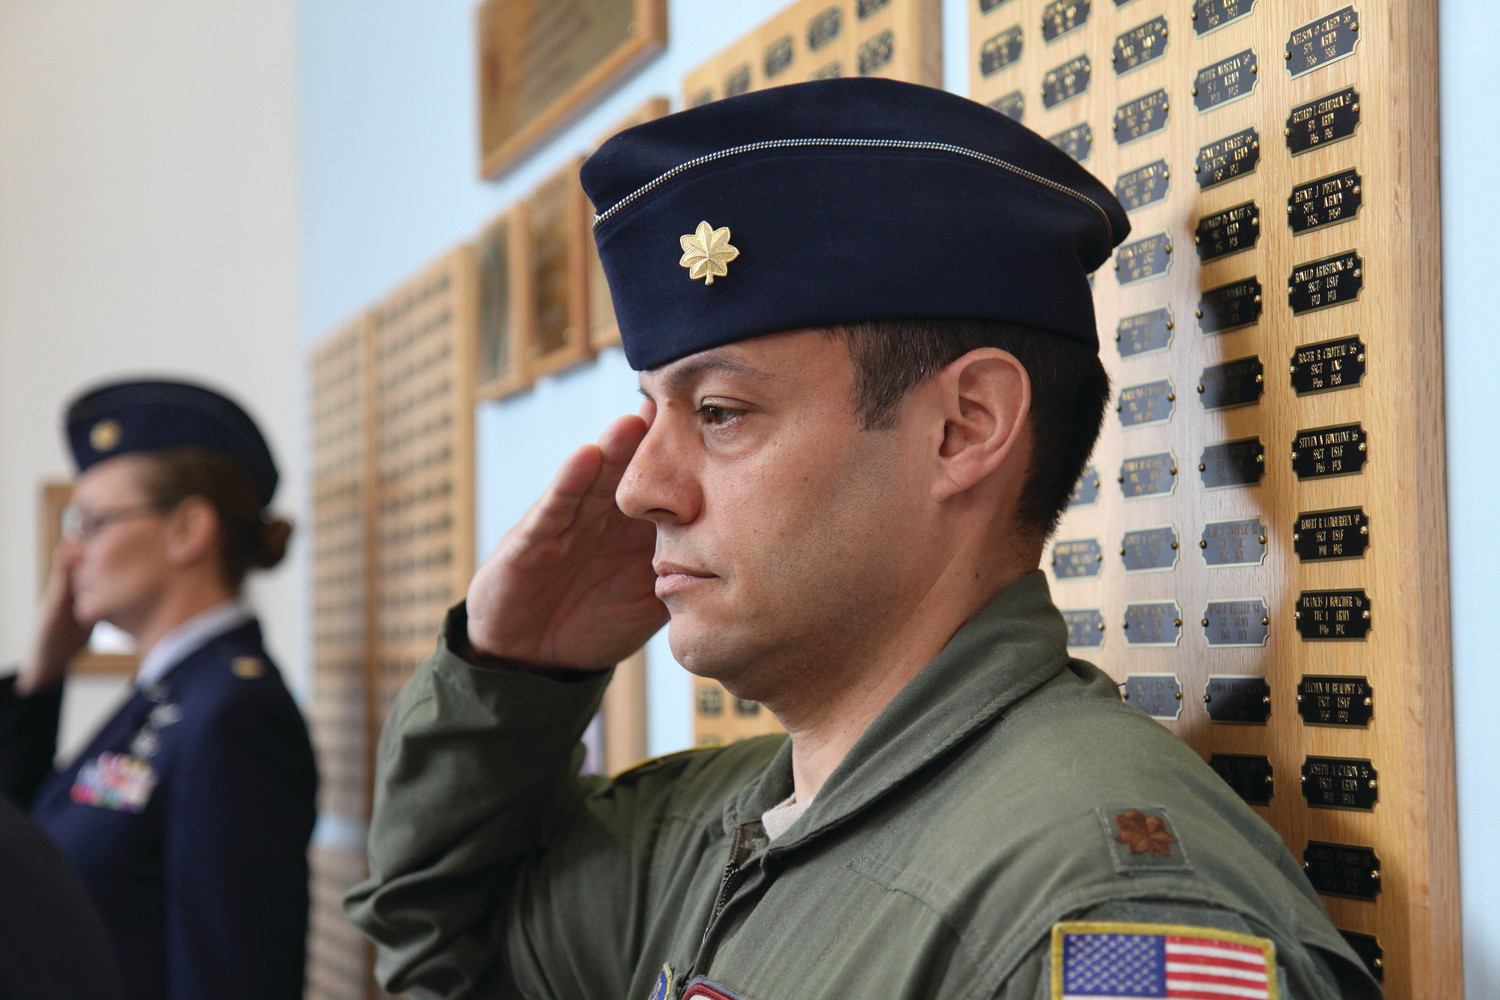 Major Jim Couture of the Rhode Island Air National Guard salutes during the ceremony. Couture is a graduate of the Mount St. Charles class of 1992.